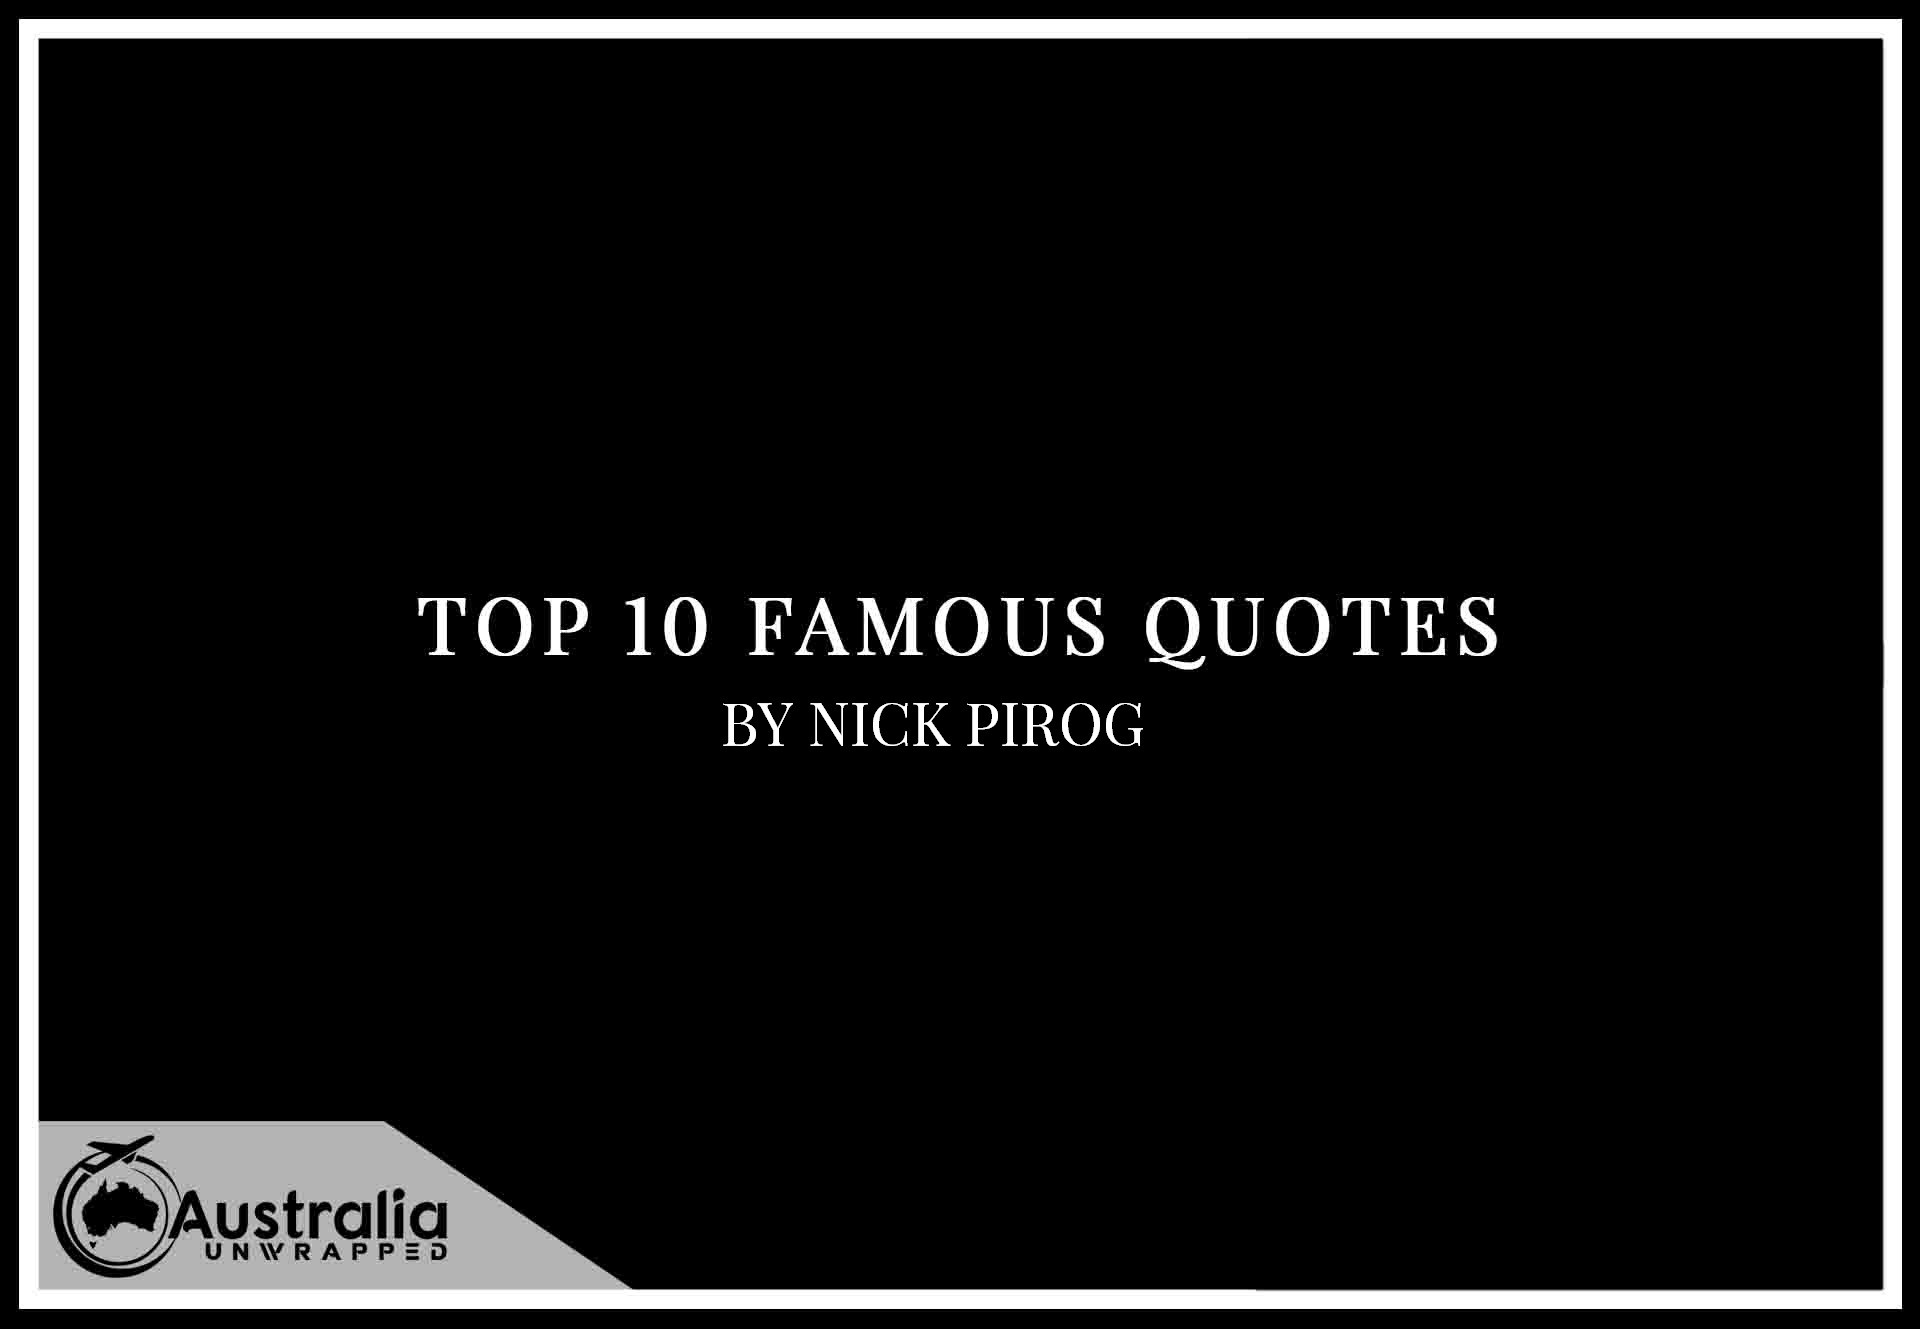 Top 10 Famous Quotes by Author Nick Pirog